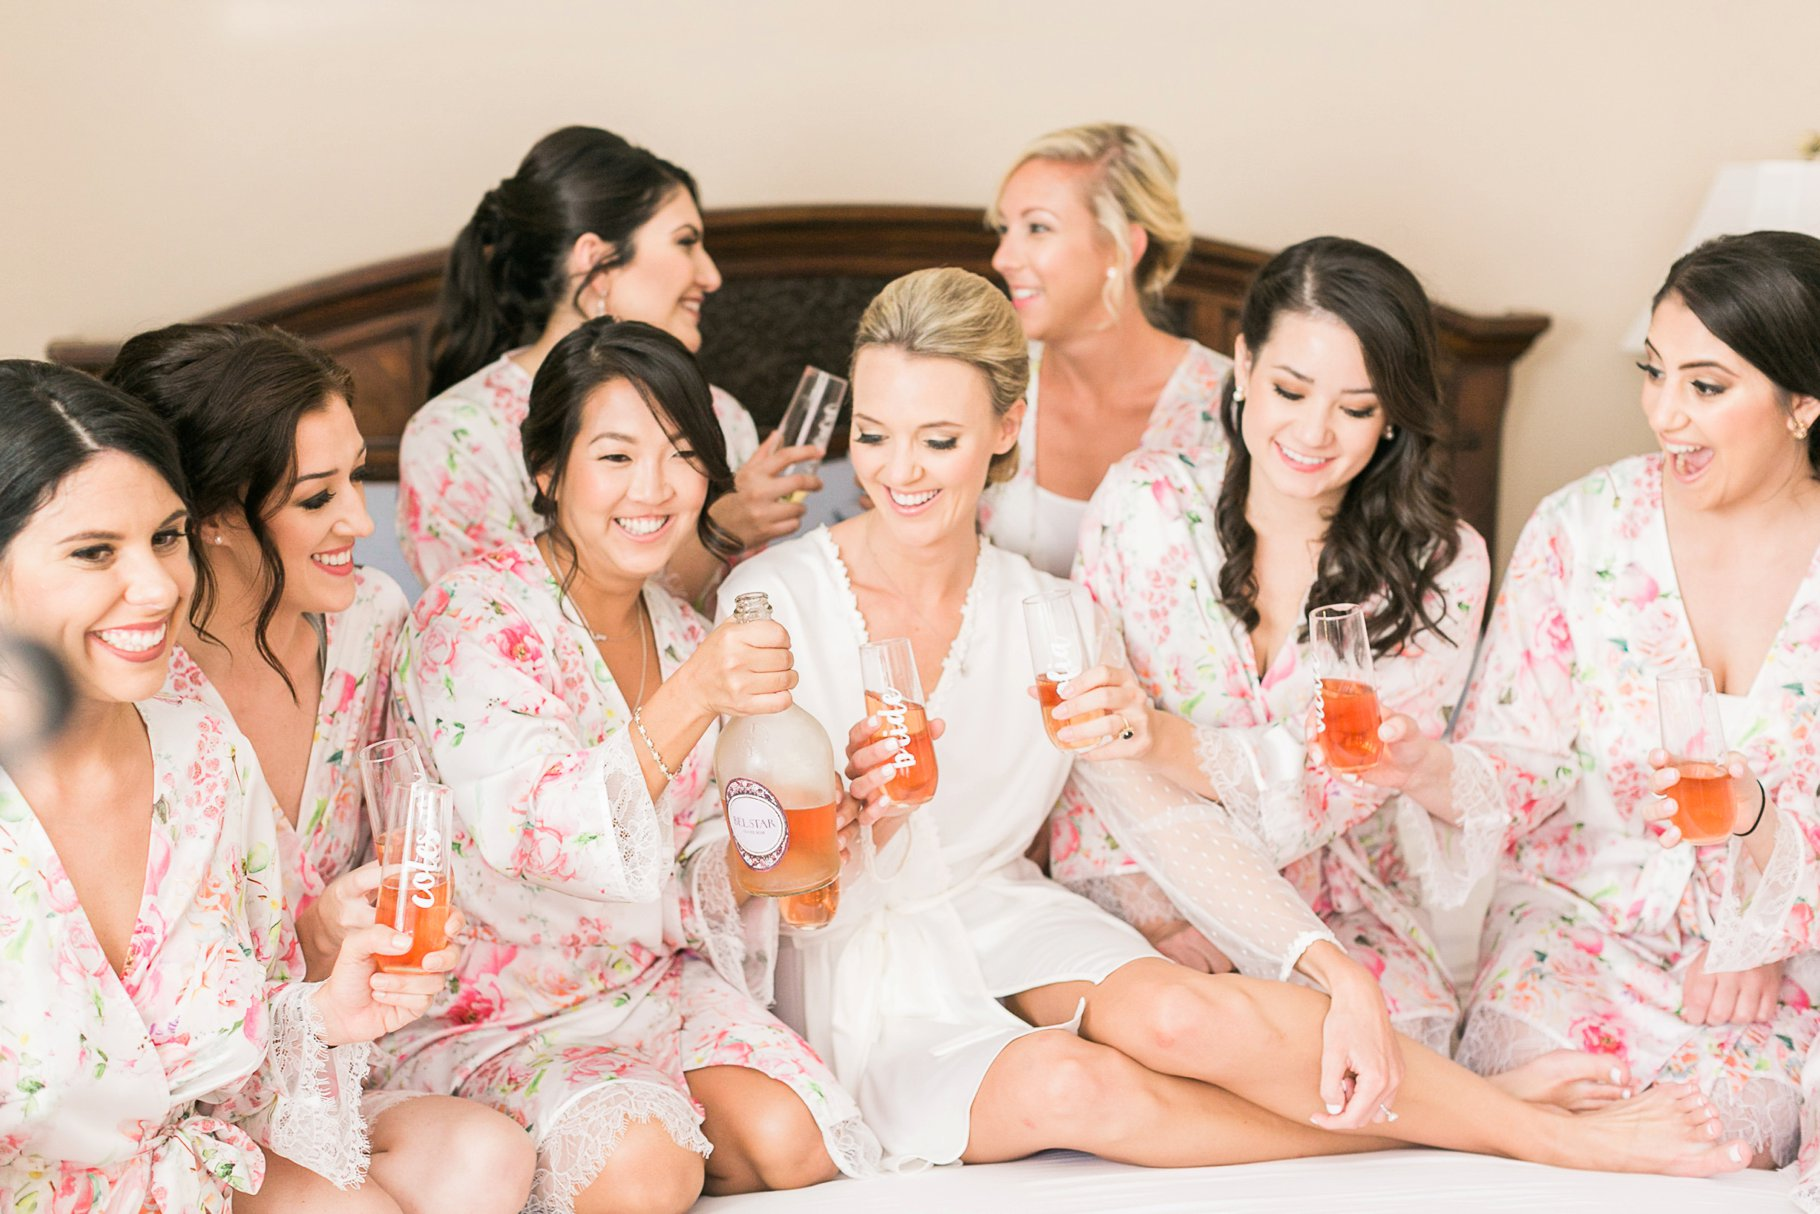 Bride and Bridemaids in Floral Robes toasting with champagne